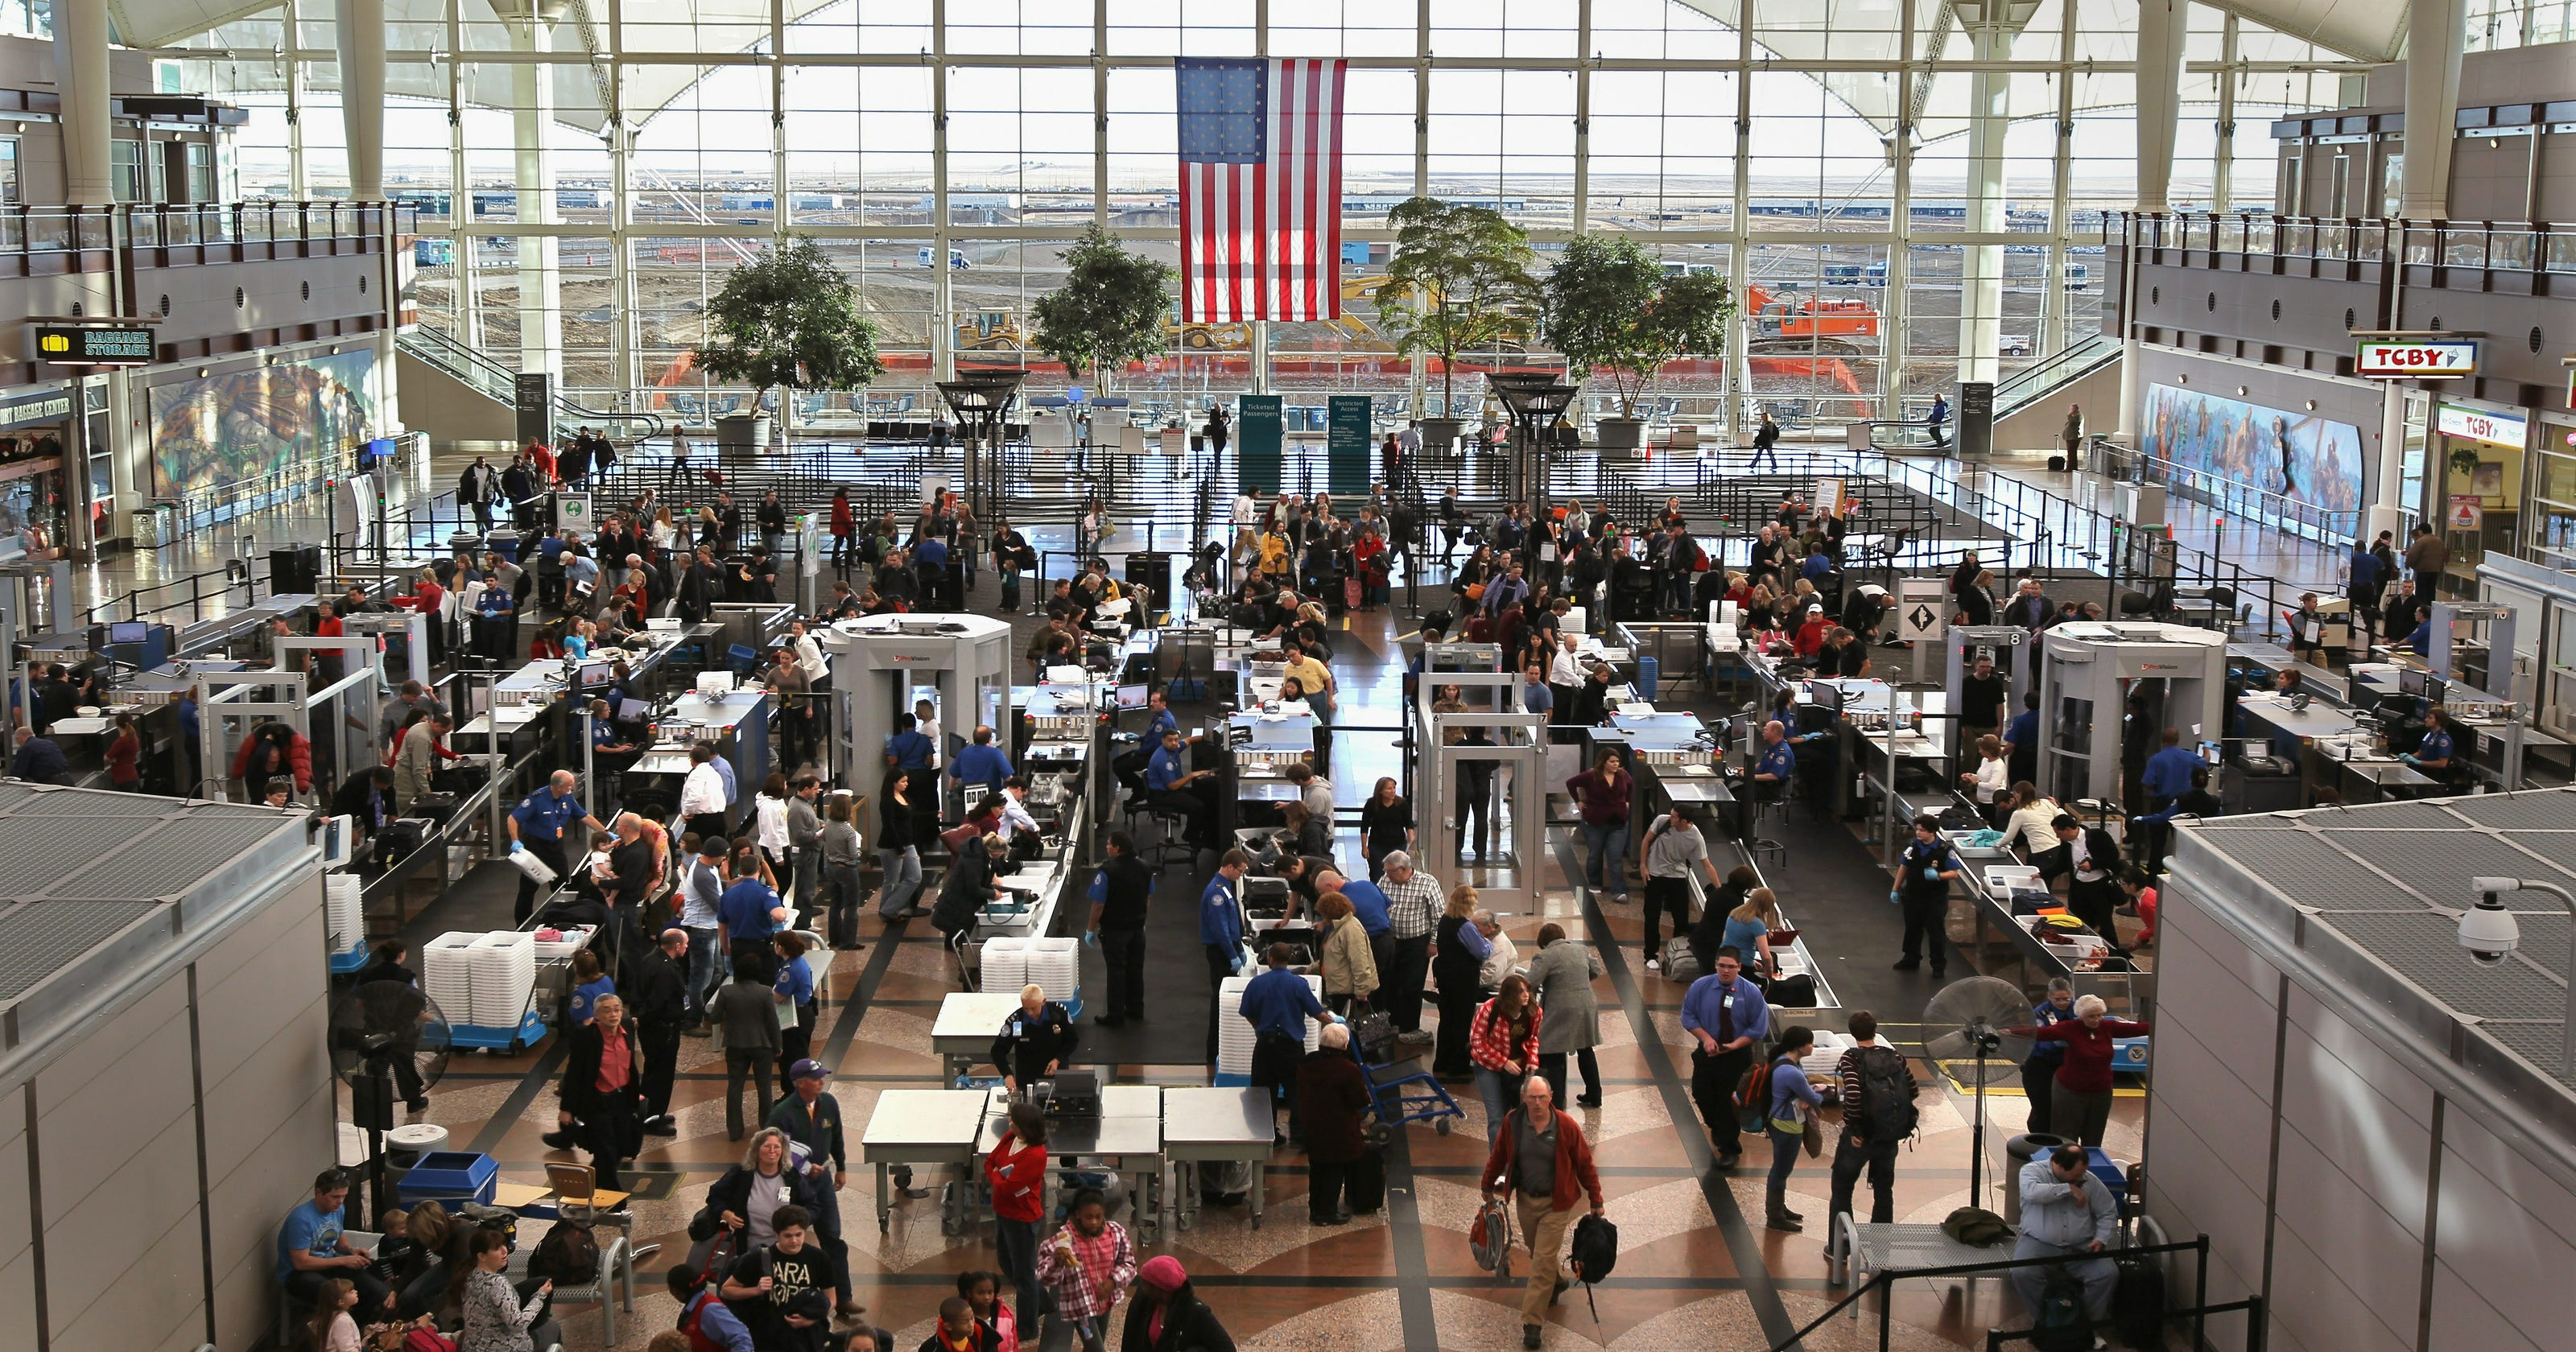 10 tips for tight airport connections